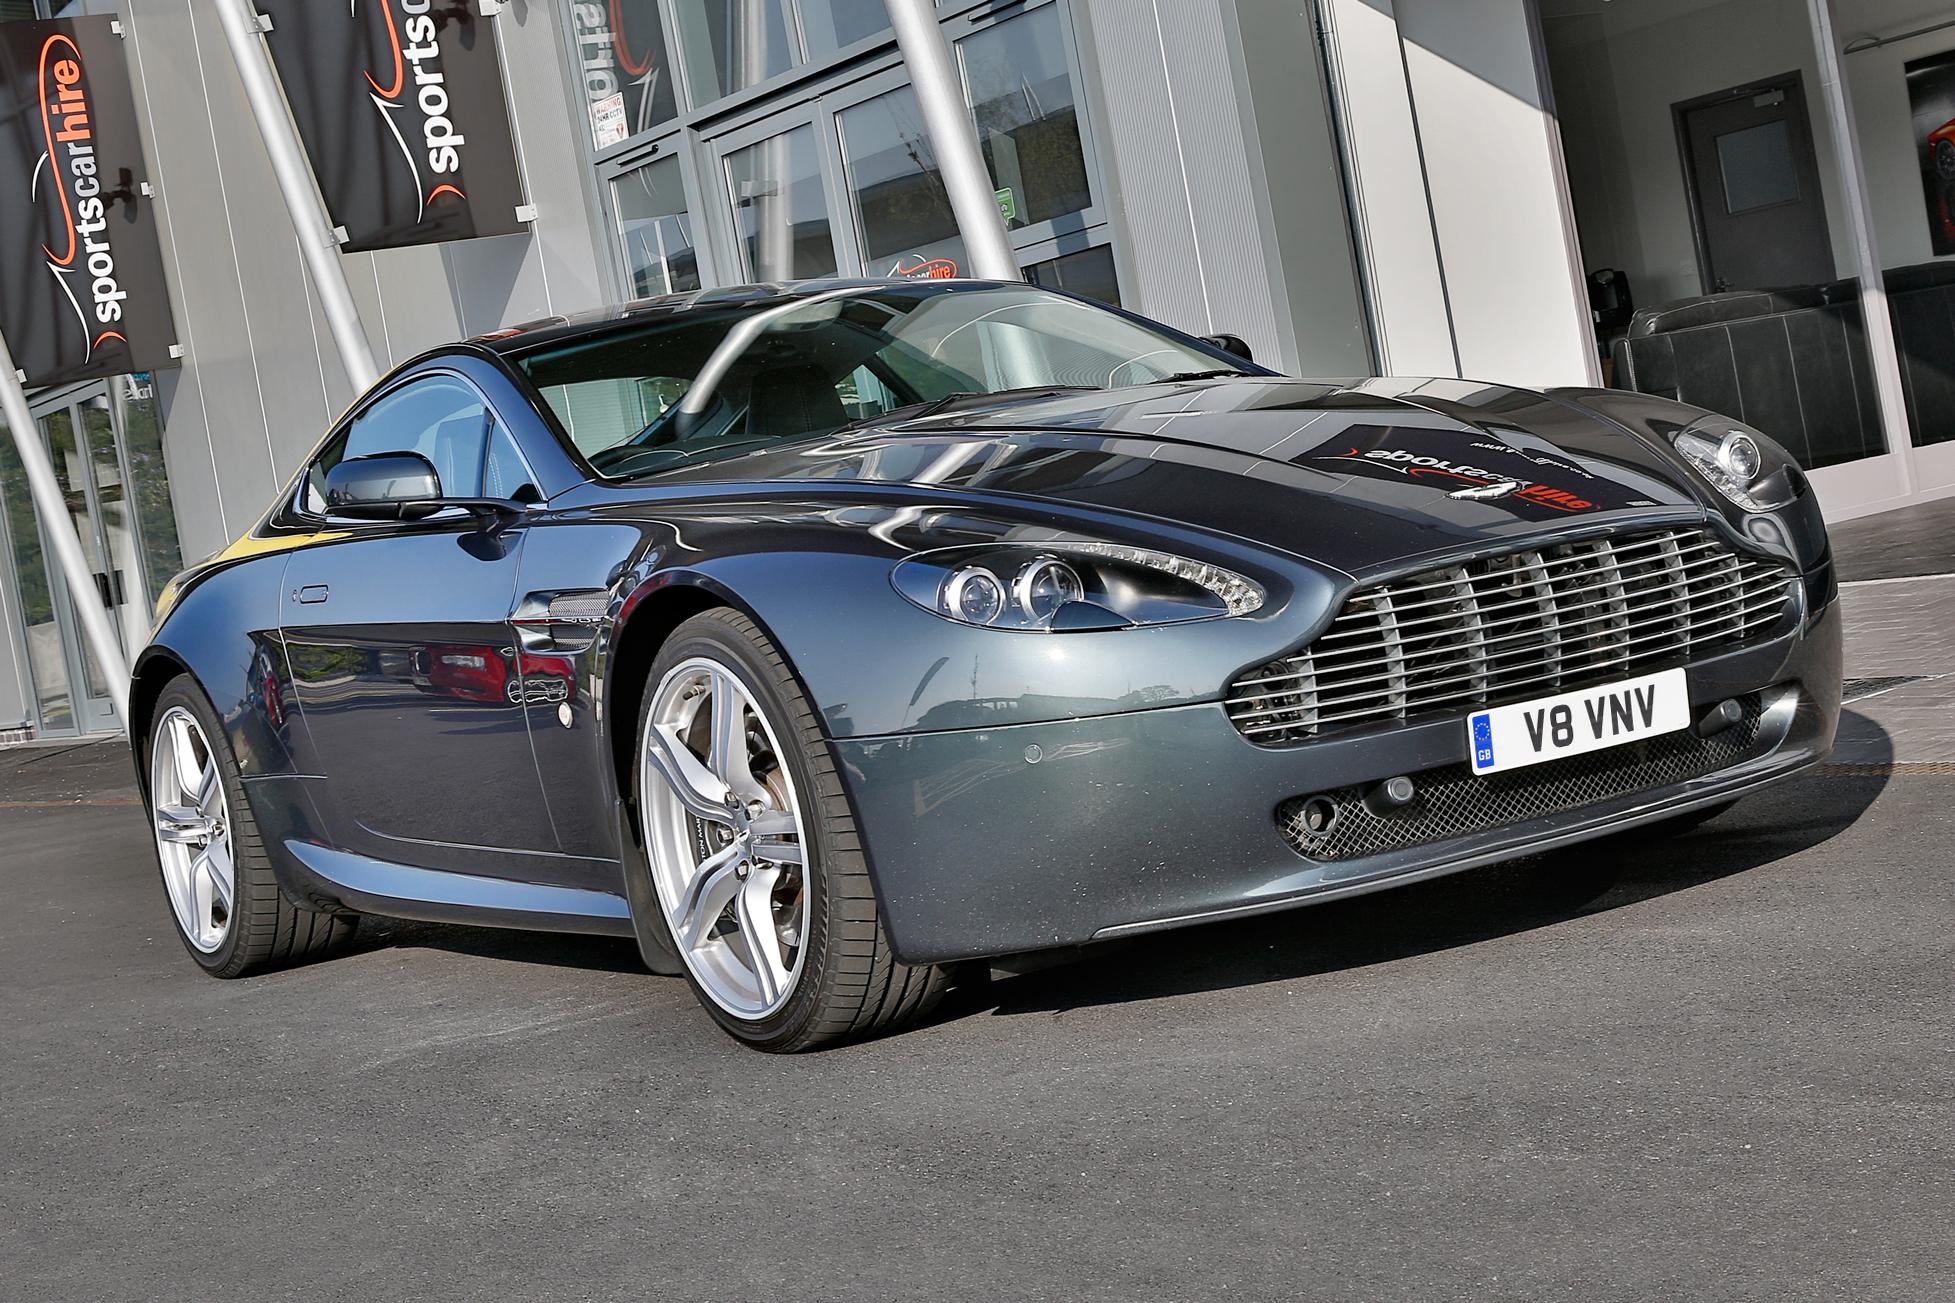 aston martin v8 vantage hire west midlands sports car hire. Black Bedroom Furniture Sets. Home Design Ideas